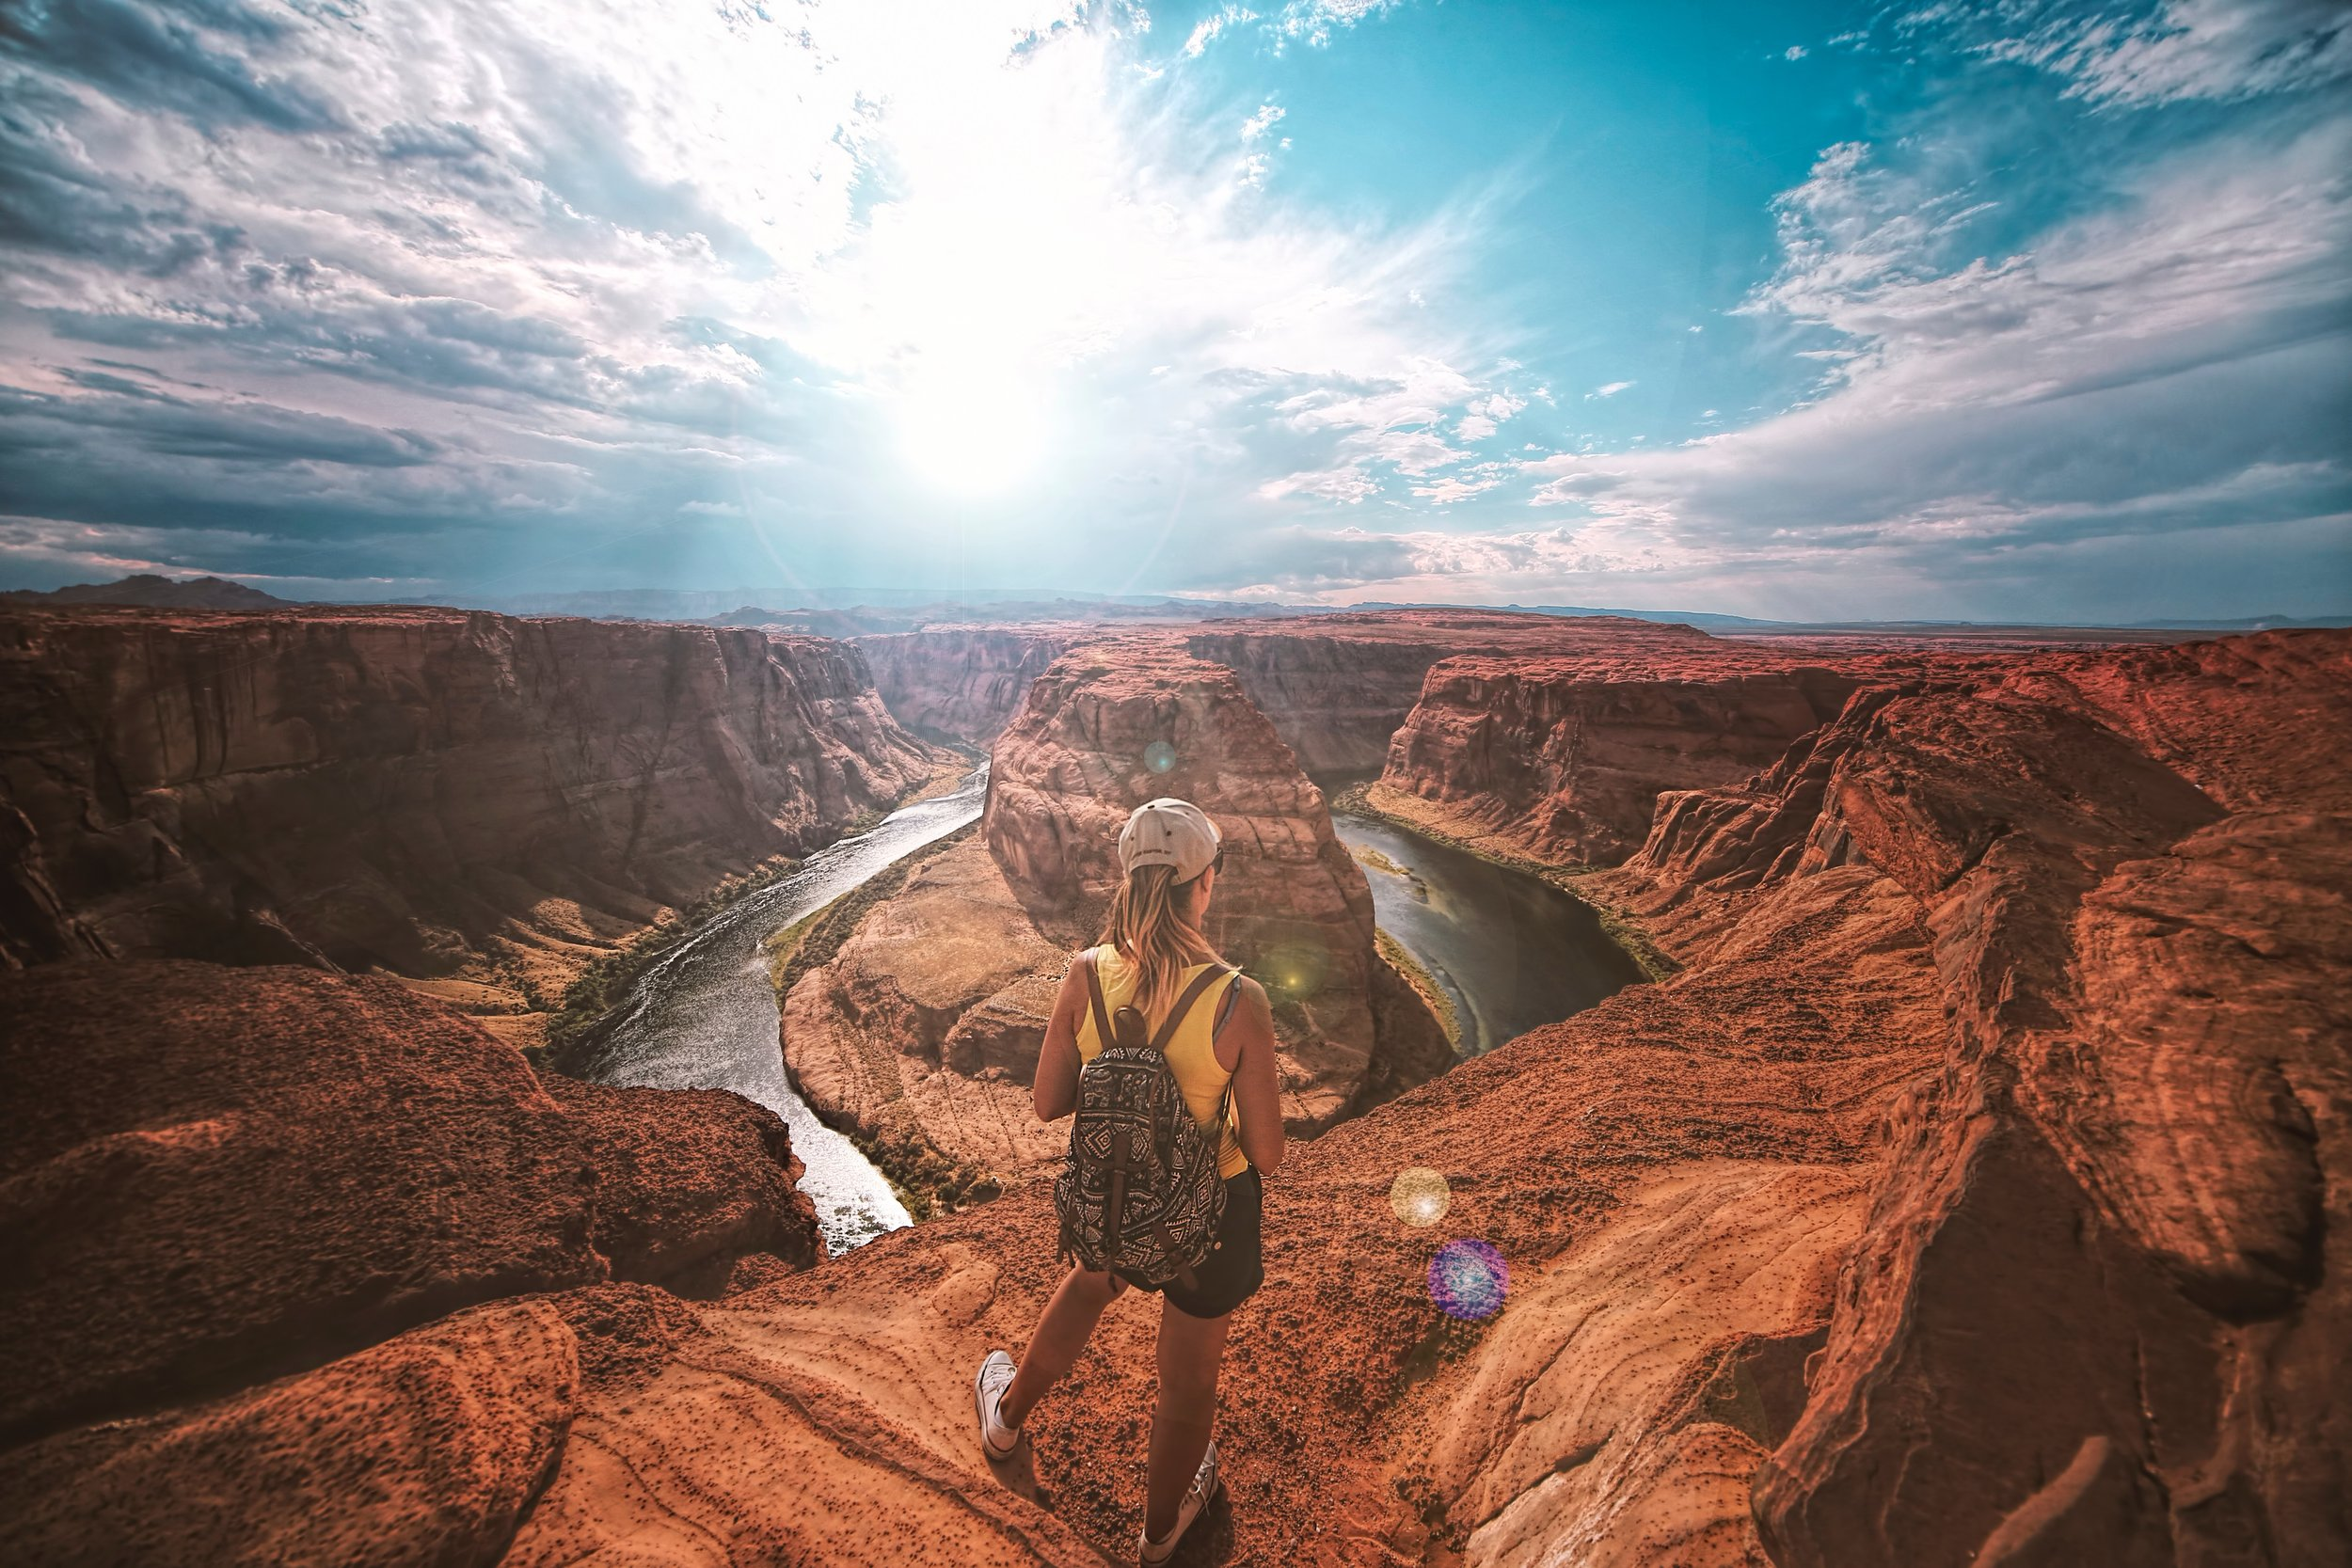 """1.Grand Canyon - You don't get to be called one of the Seven Wonders of the Natural World if you're """"just mediocre"""". The Grand Canyon Rim-to-Rim Hike lives up to its honorable name. This trail is not for the faint of heart as it includes a 14.3 mile trek down 6,000 feet to the bottom of the canyon followed by a 4,500 foot climb and a 9.6 mile hike back out to the South Rim. If you're up for it, the beauty of the Grand Canyon is unmatched, and definitely a hike you should add to your bucket list!"""